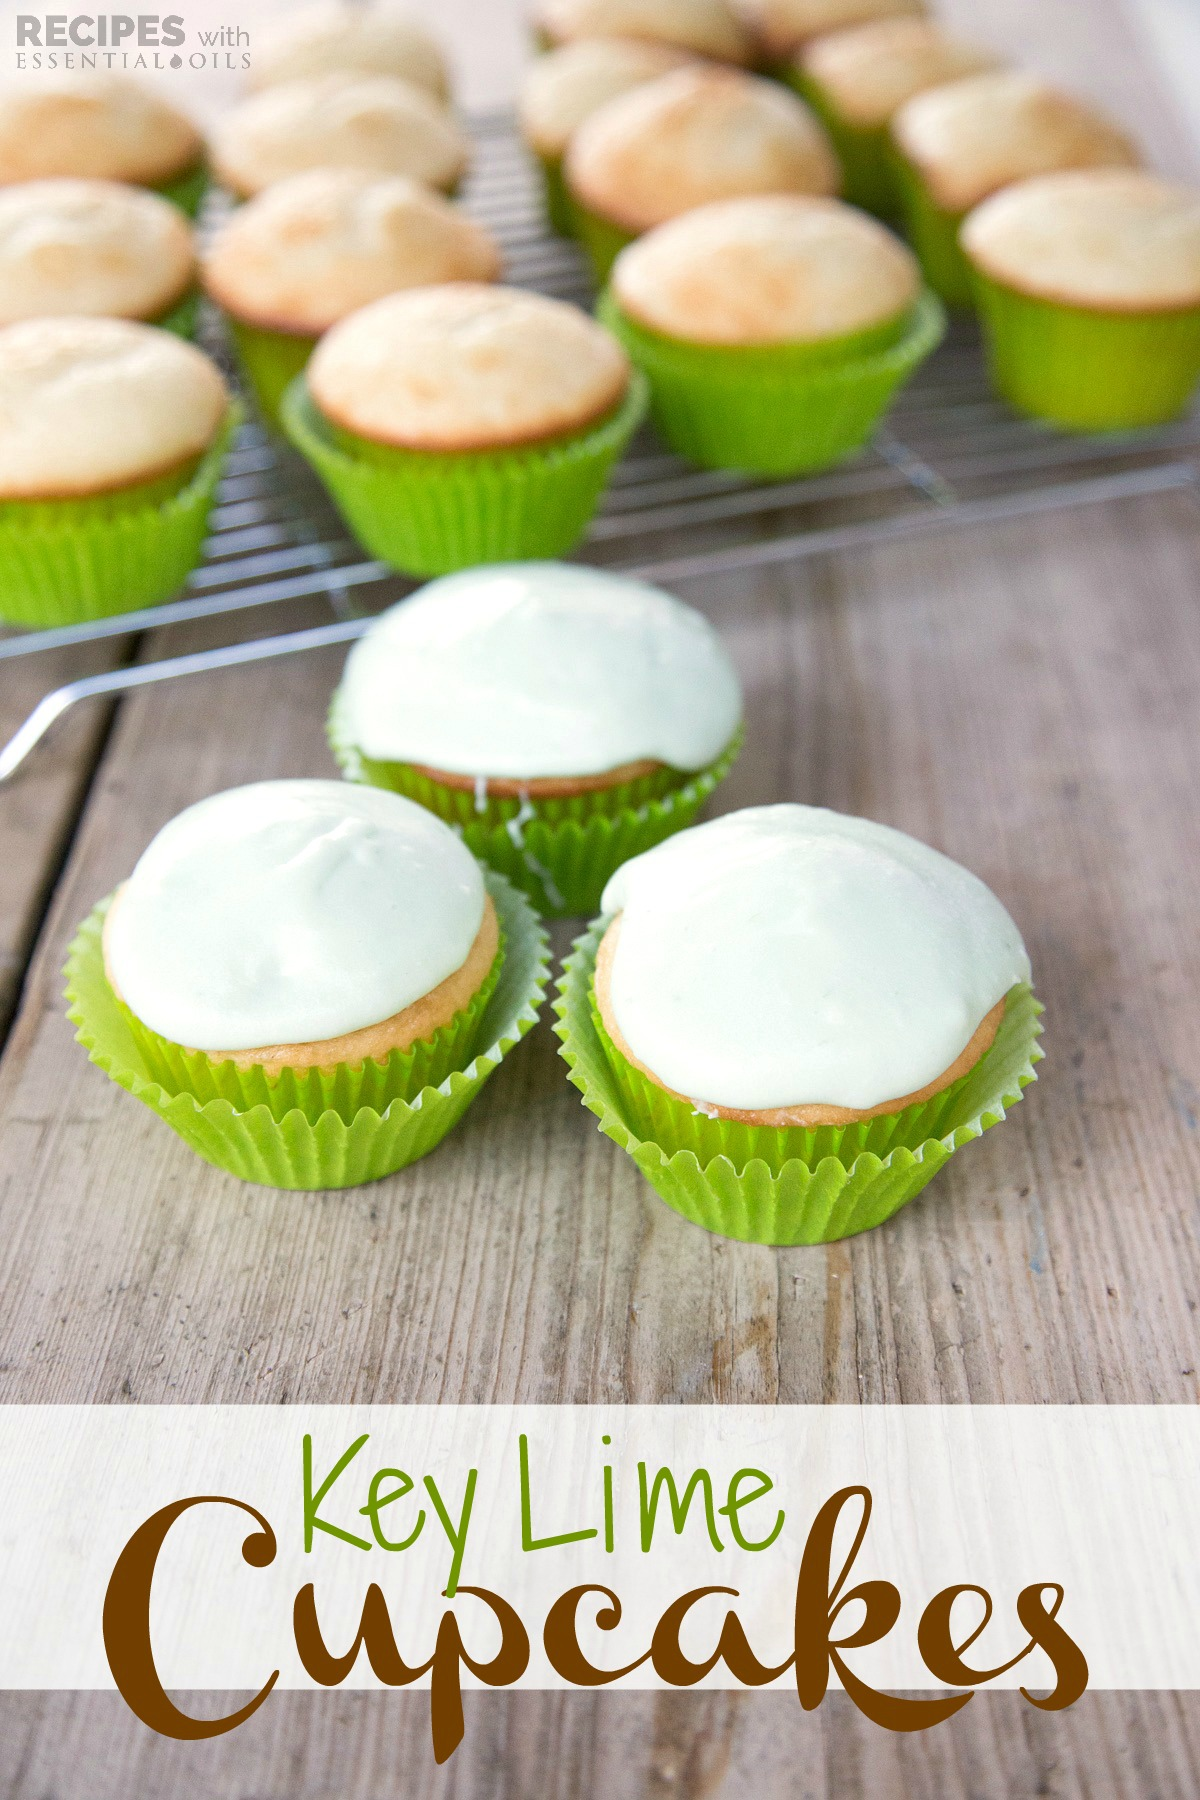 Key Lime Cupcakes Recipes With Essential Oils